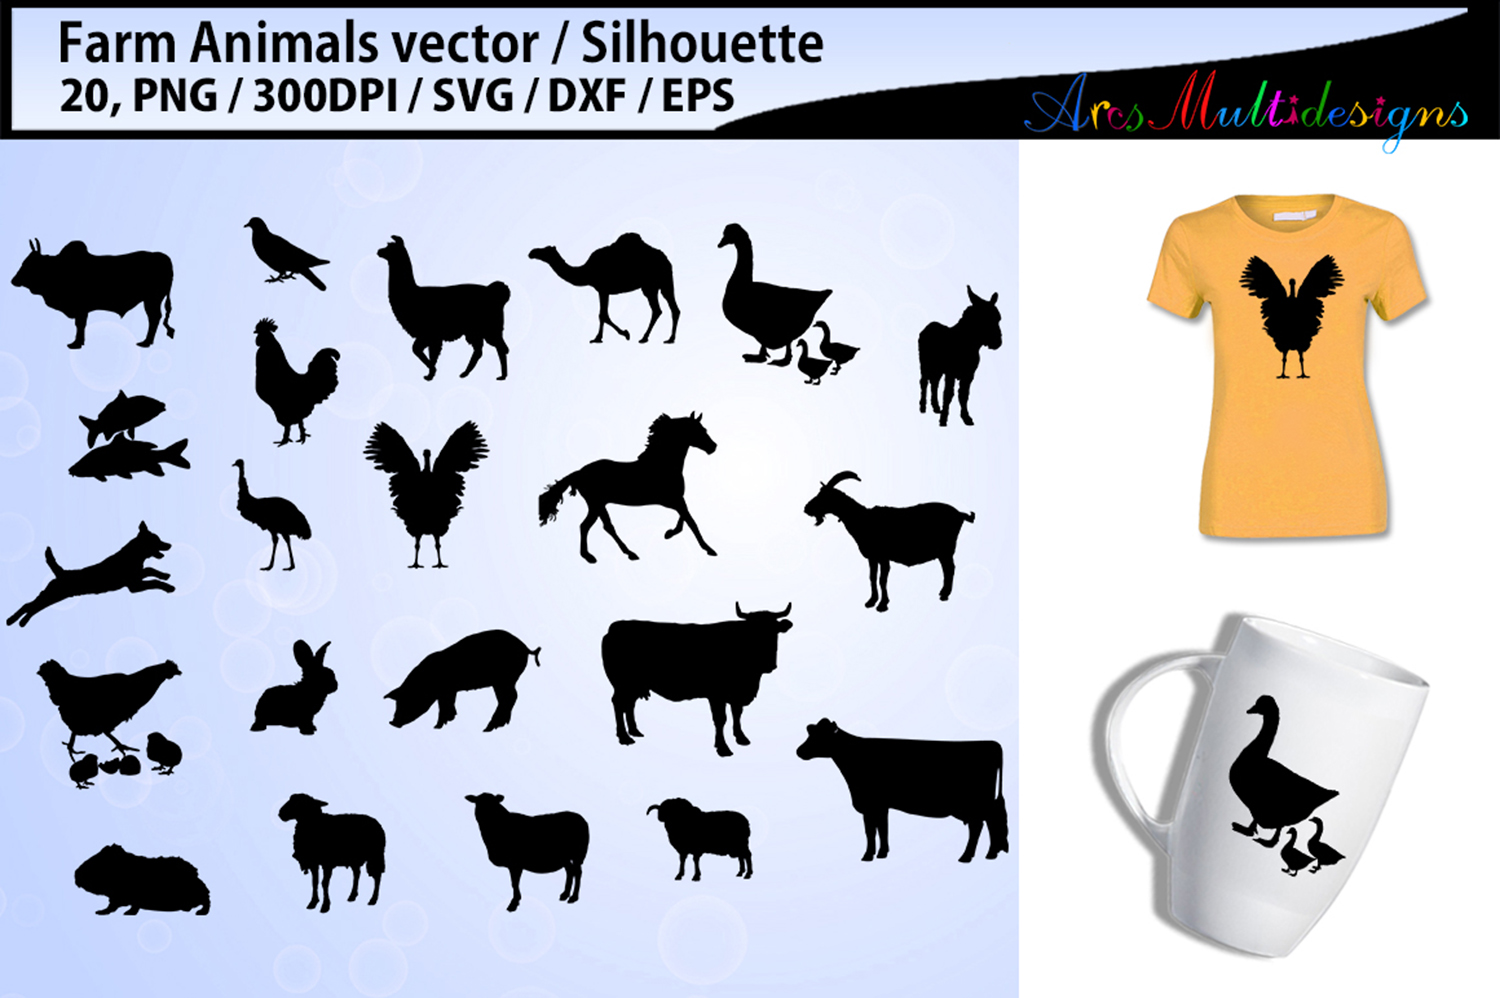 Download Free Farm Animals Silhouettes Svg Graphic By Arcs Multidesigns for Cricut Explore, Silhouette and other cutting machines.